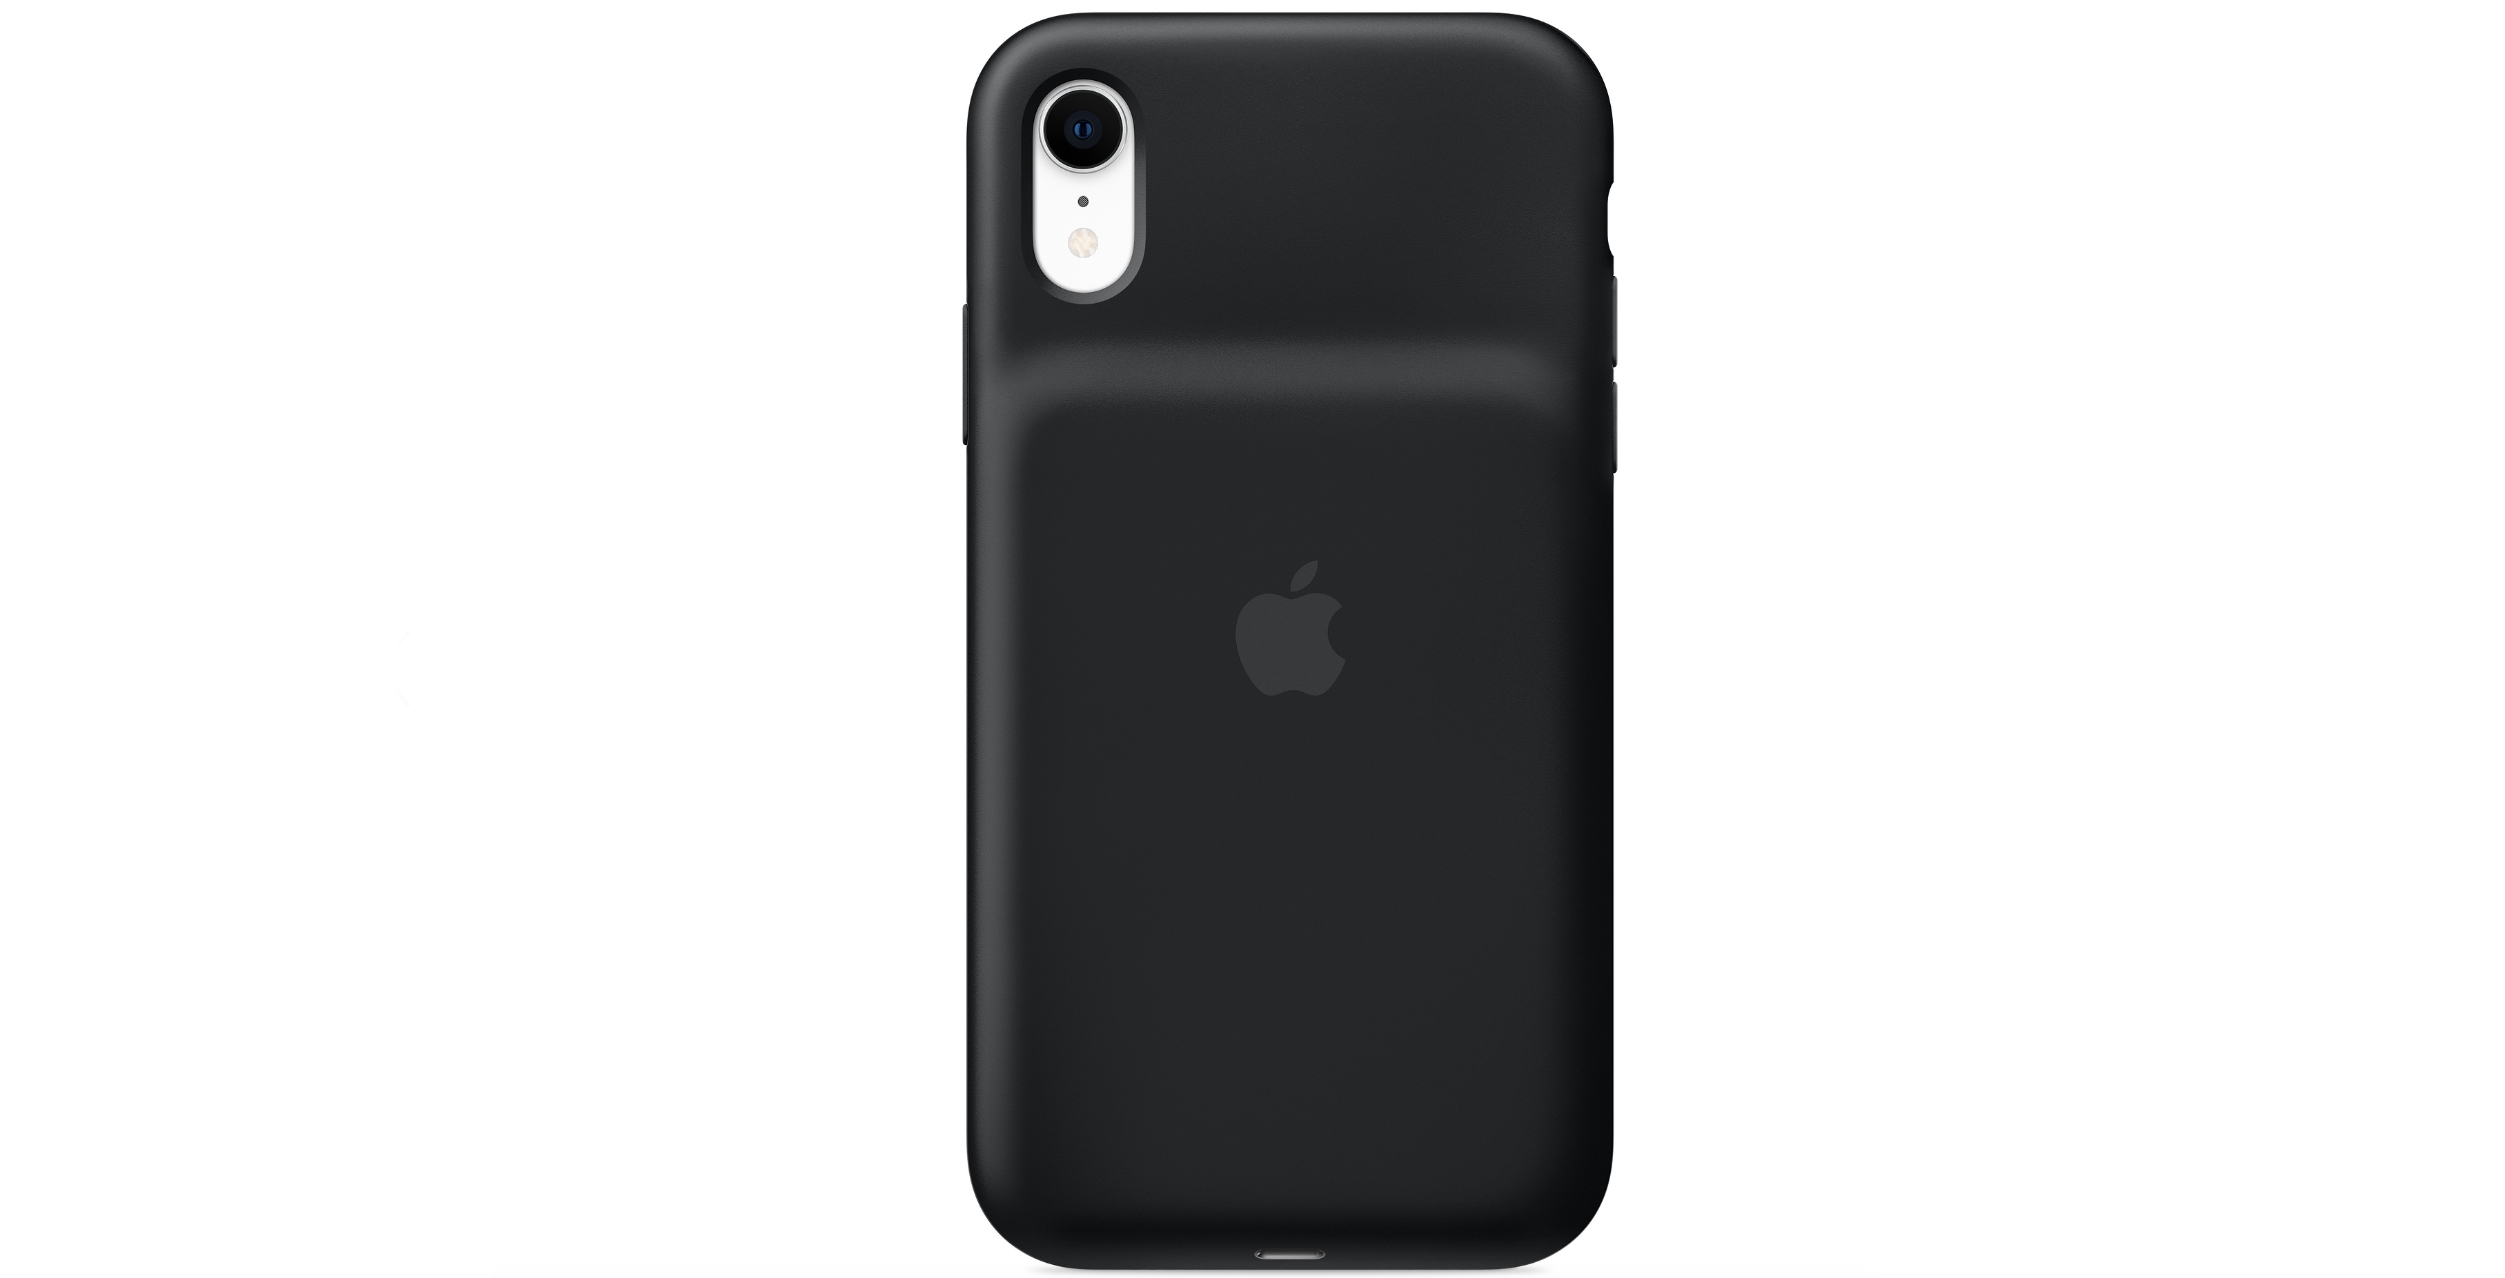 Apple iPhone XS battery case compatible with iPhone X